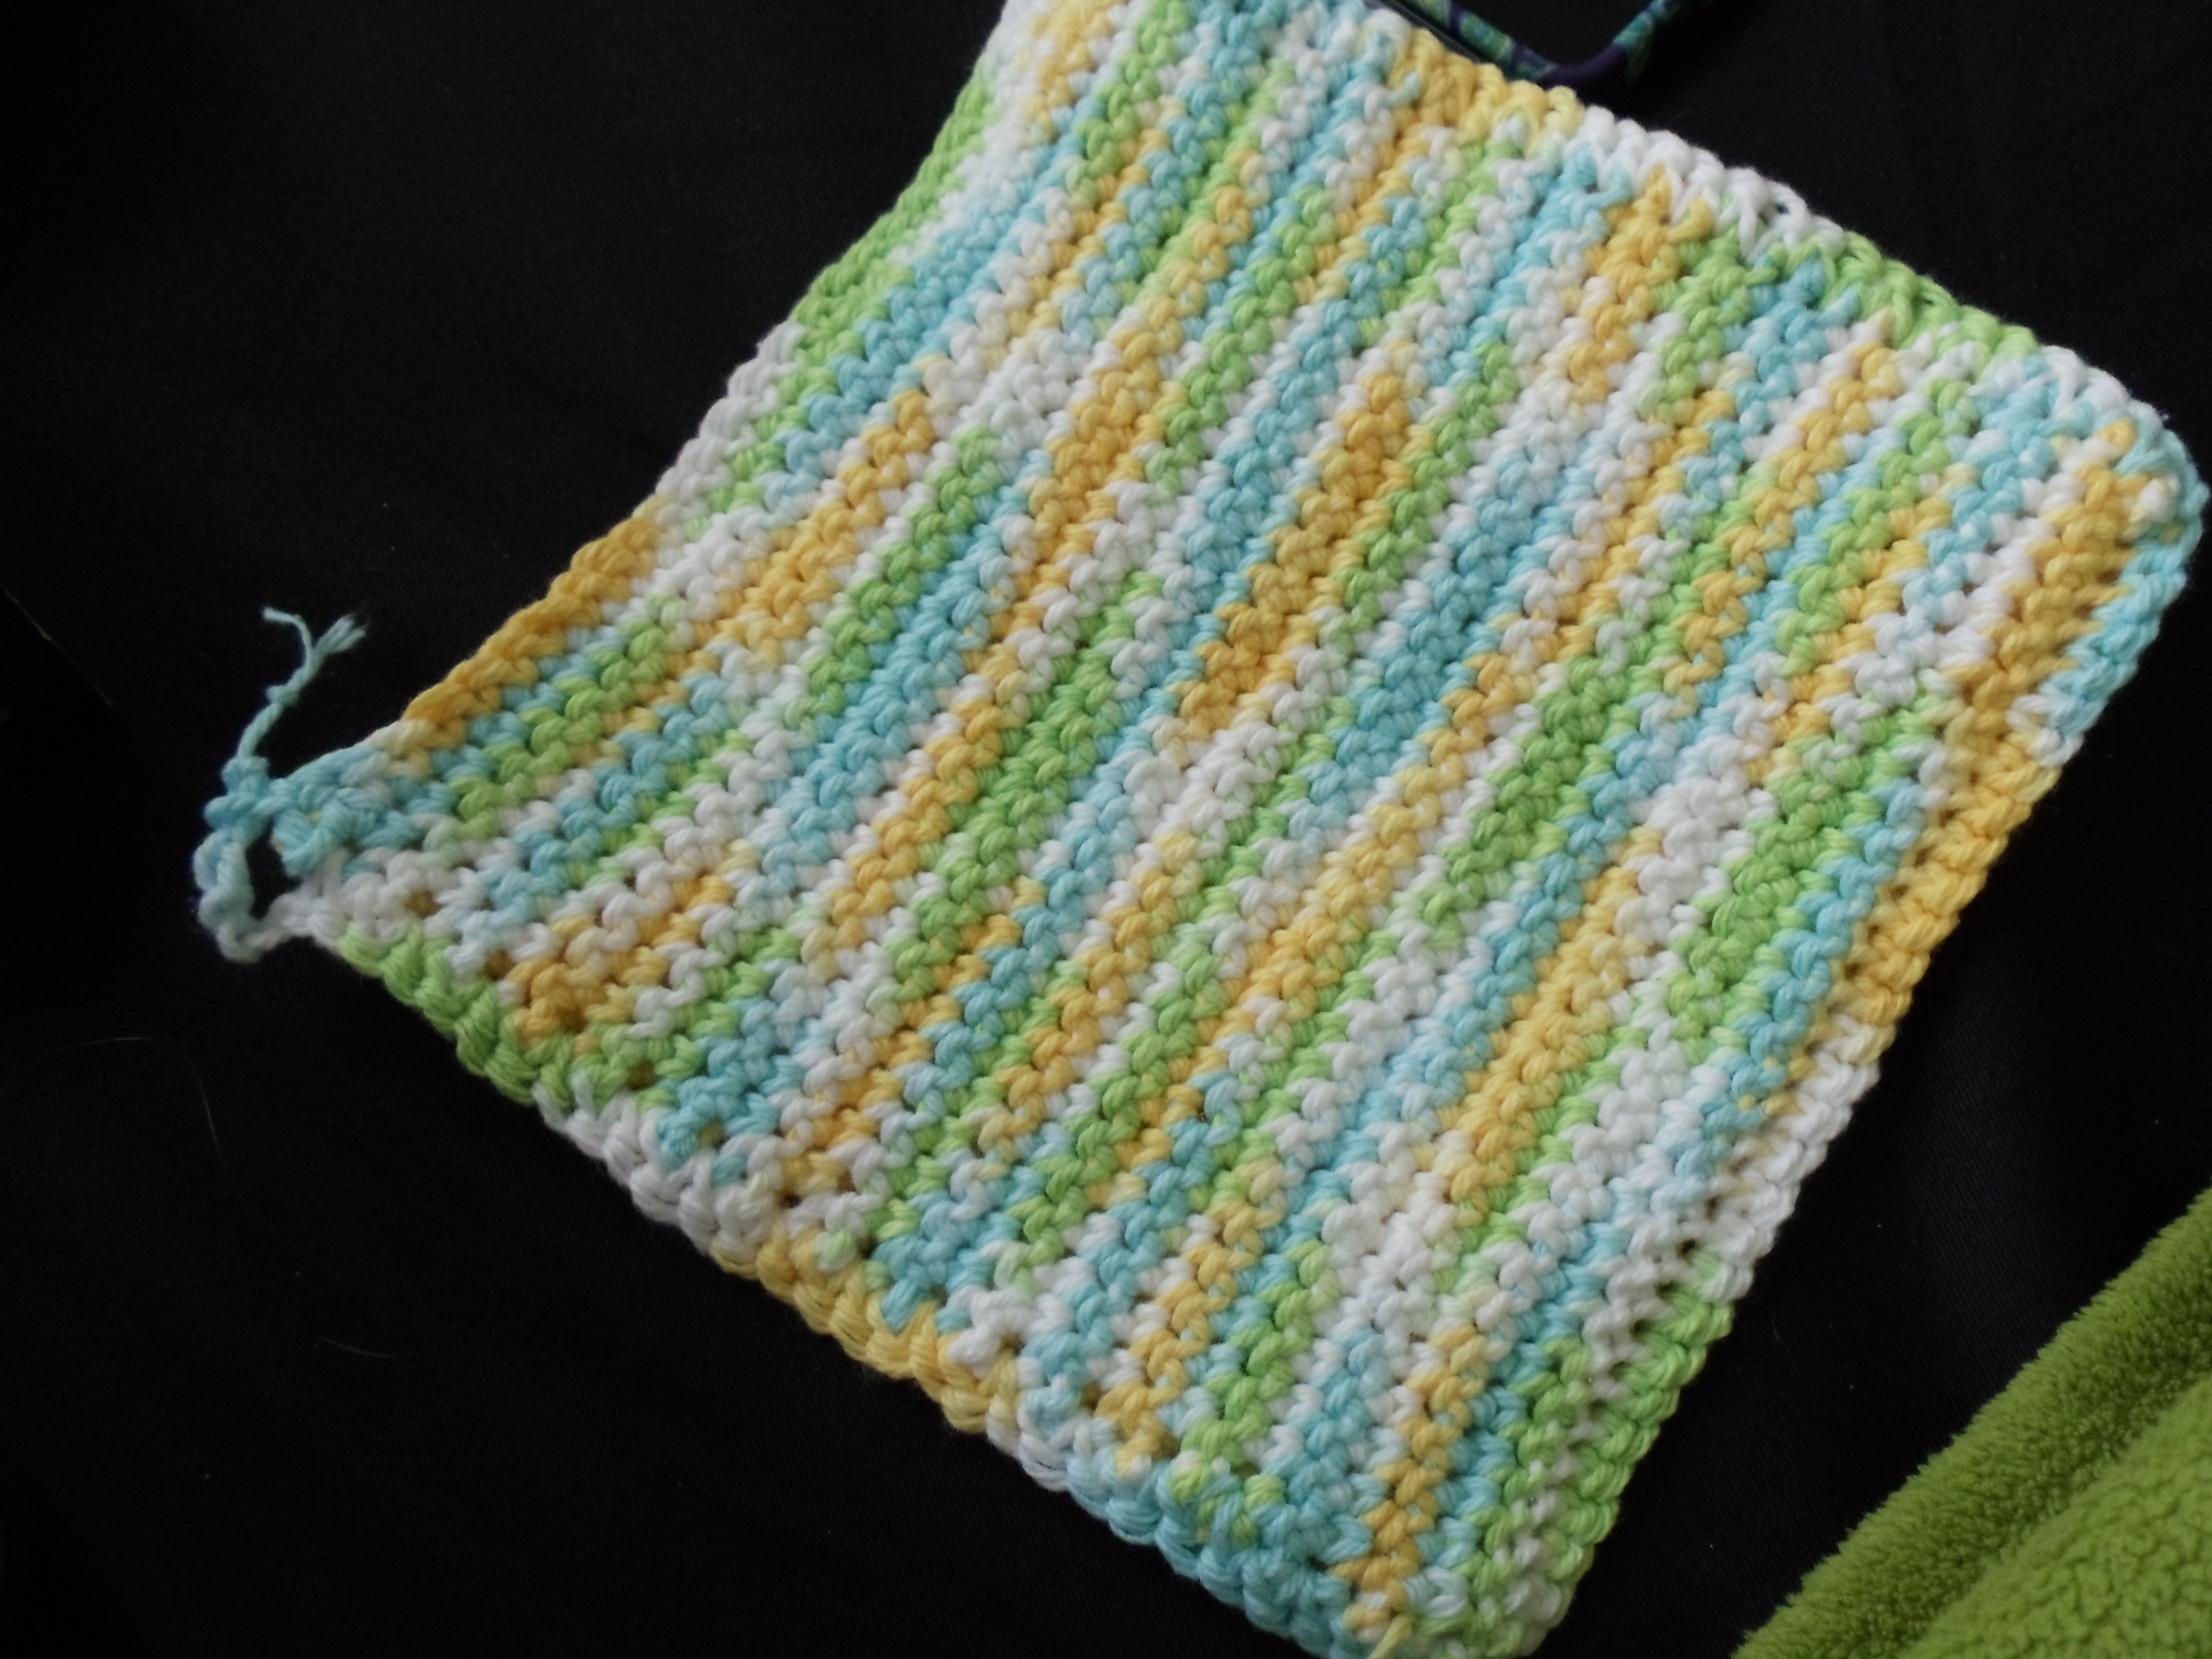 Crochet Potholder Pattern Beautiful Diy Crochet Potholder Of Amazing 43 Pictures Crochet Potholder Pattern